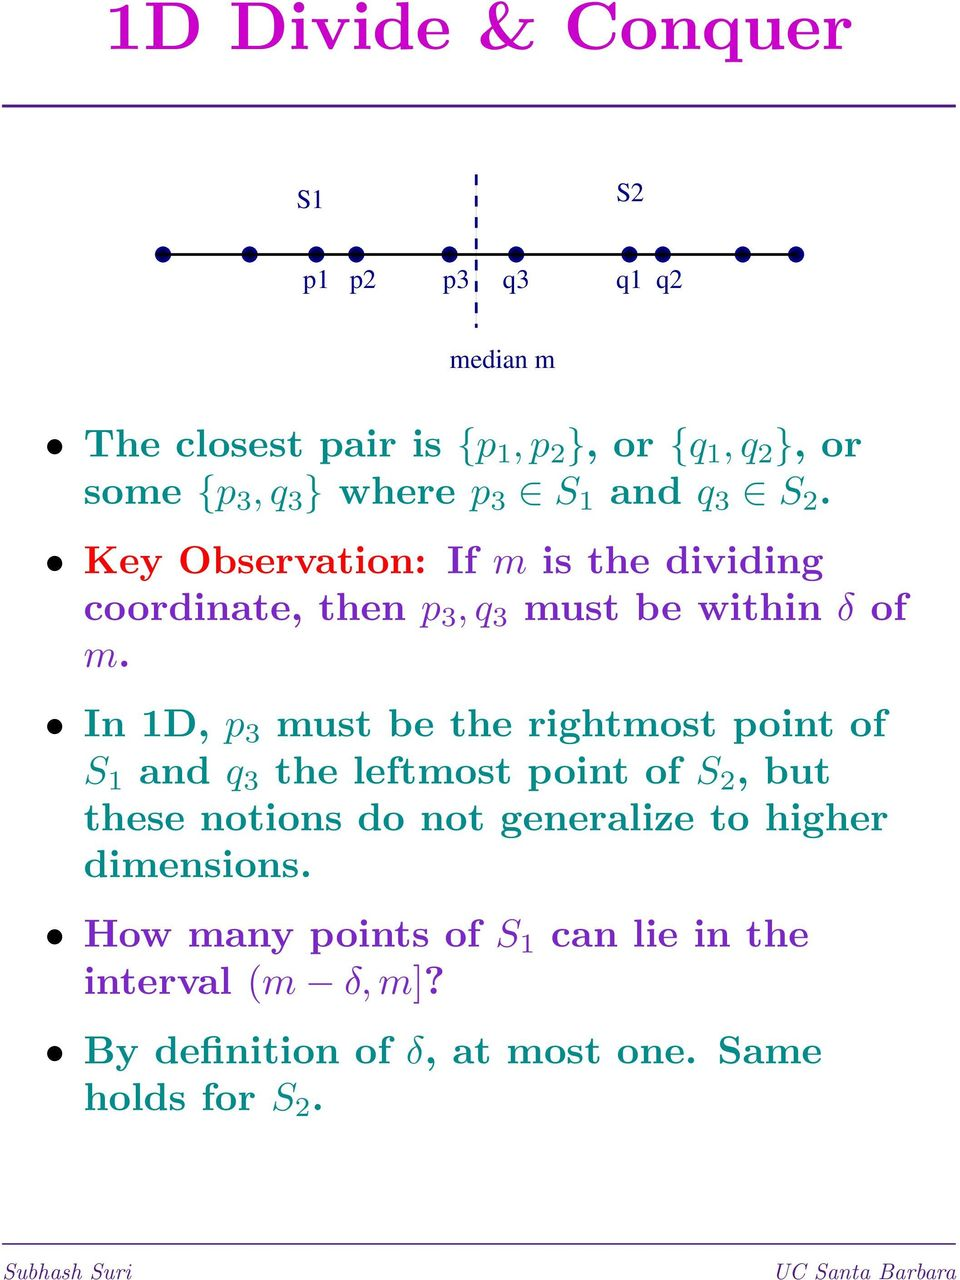 In 1D, p 3 must be the rightmost point of S 1 and q 3 the leftmost point of S 2, but these notions do not generalize to